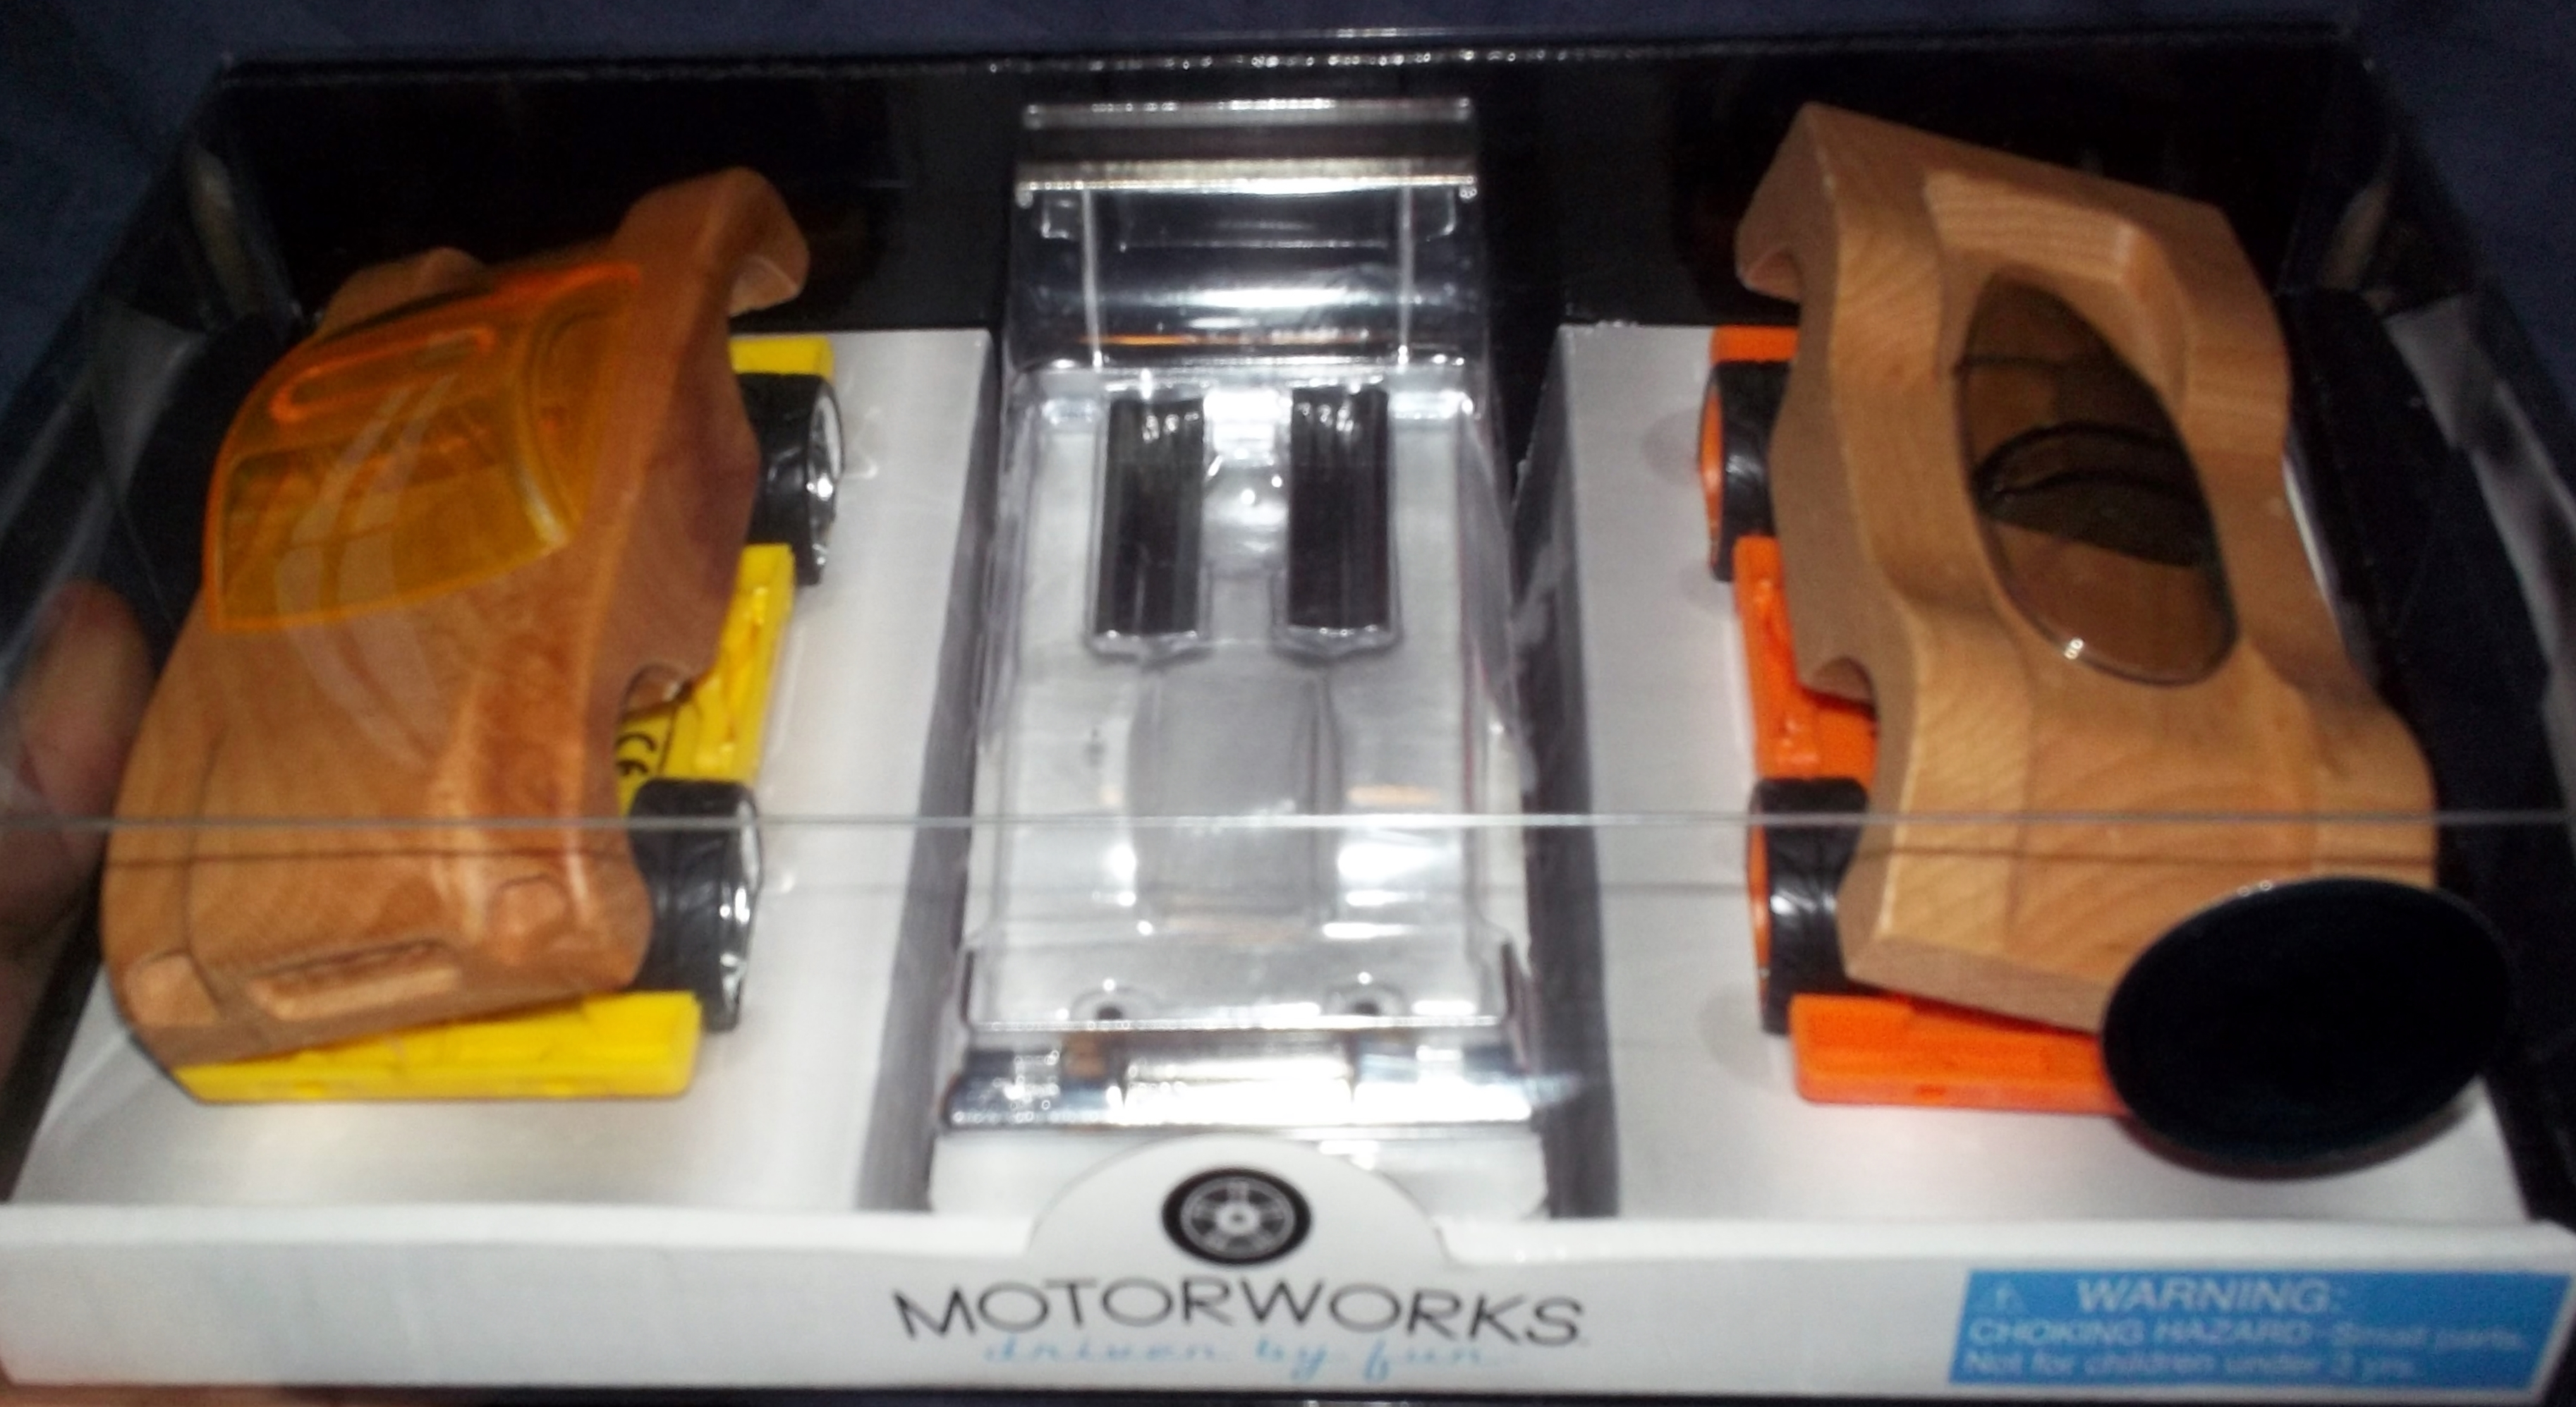 Manhattan Toys Motorworks Emily Reviews